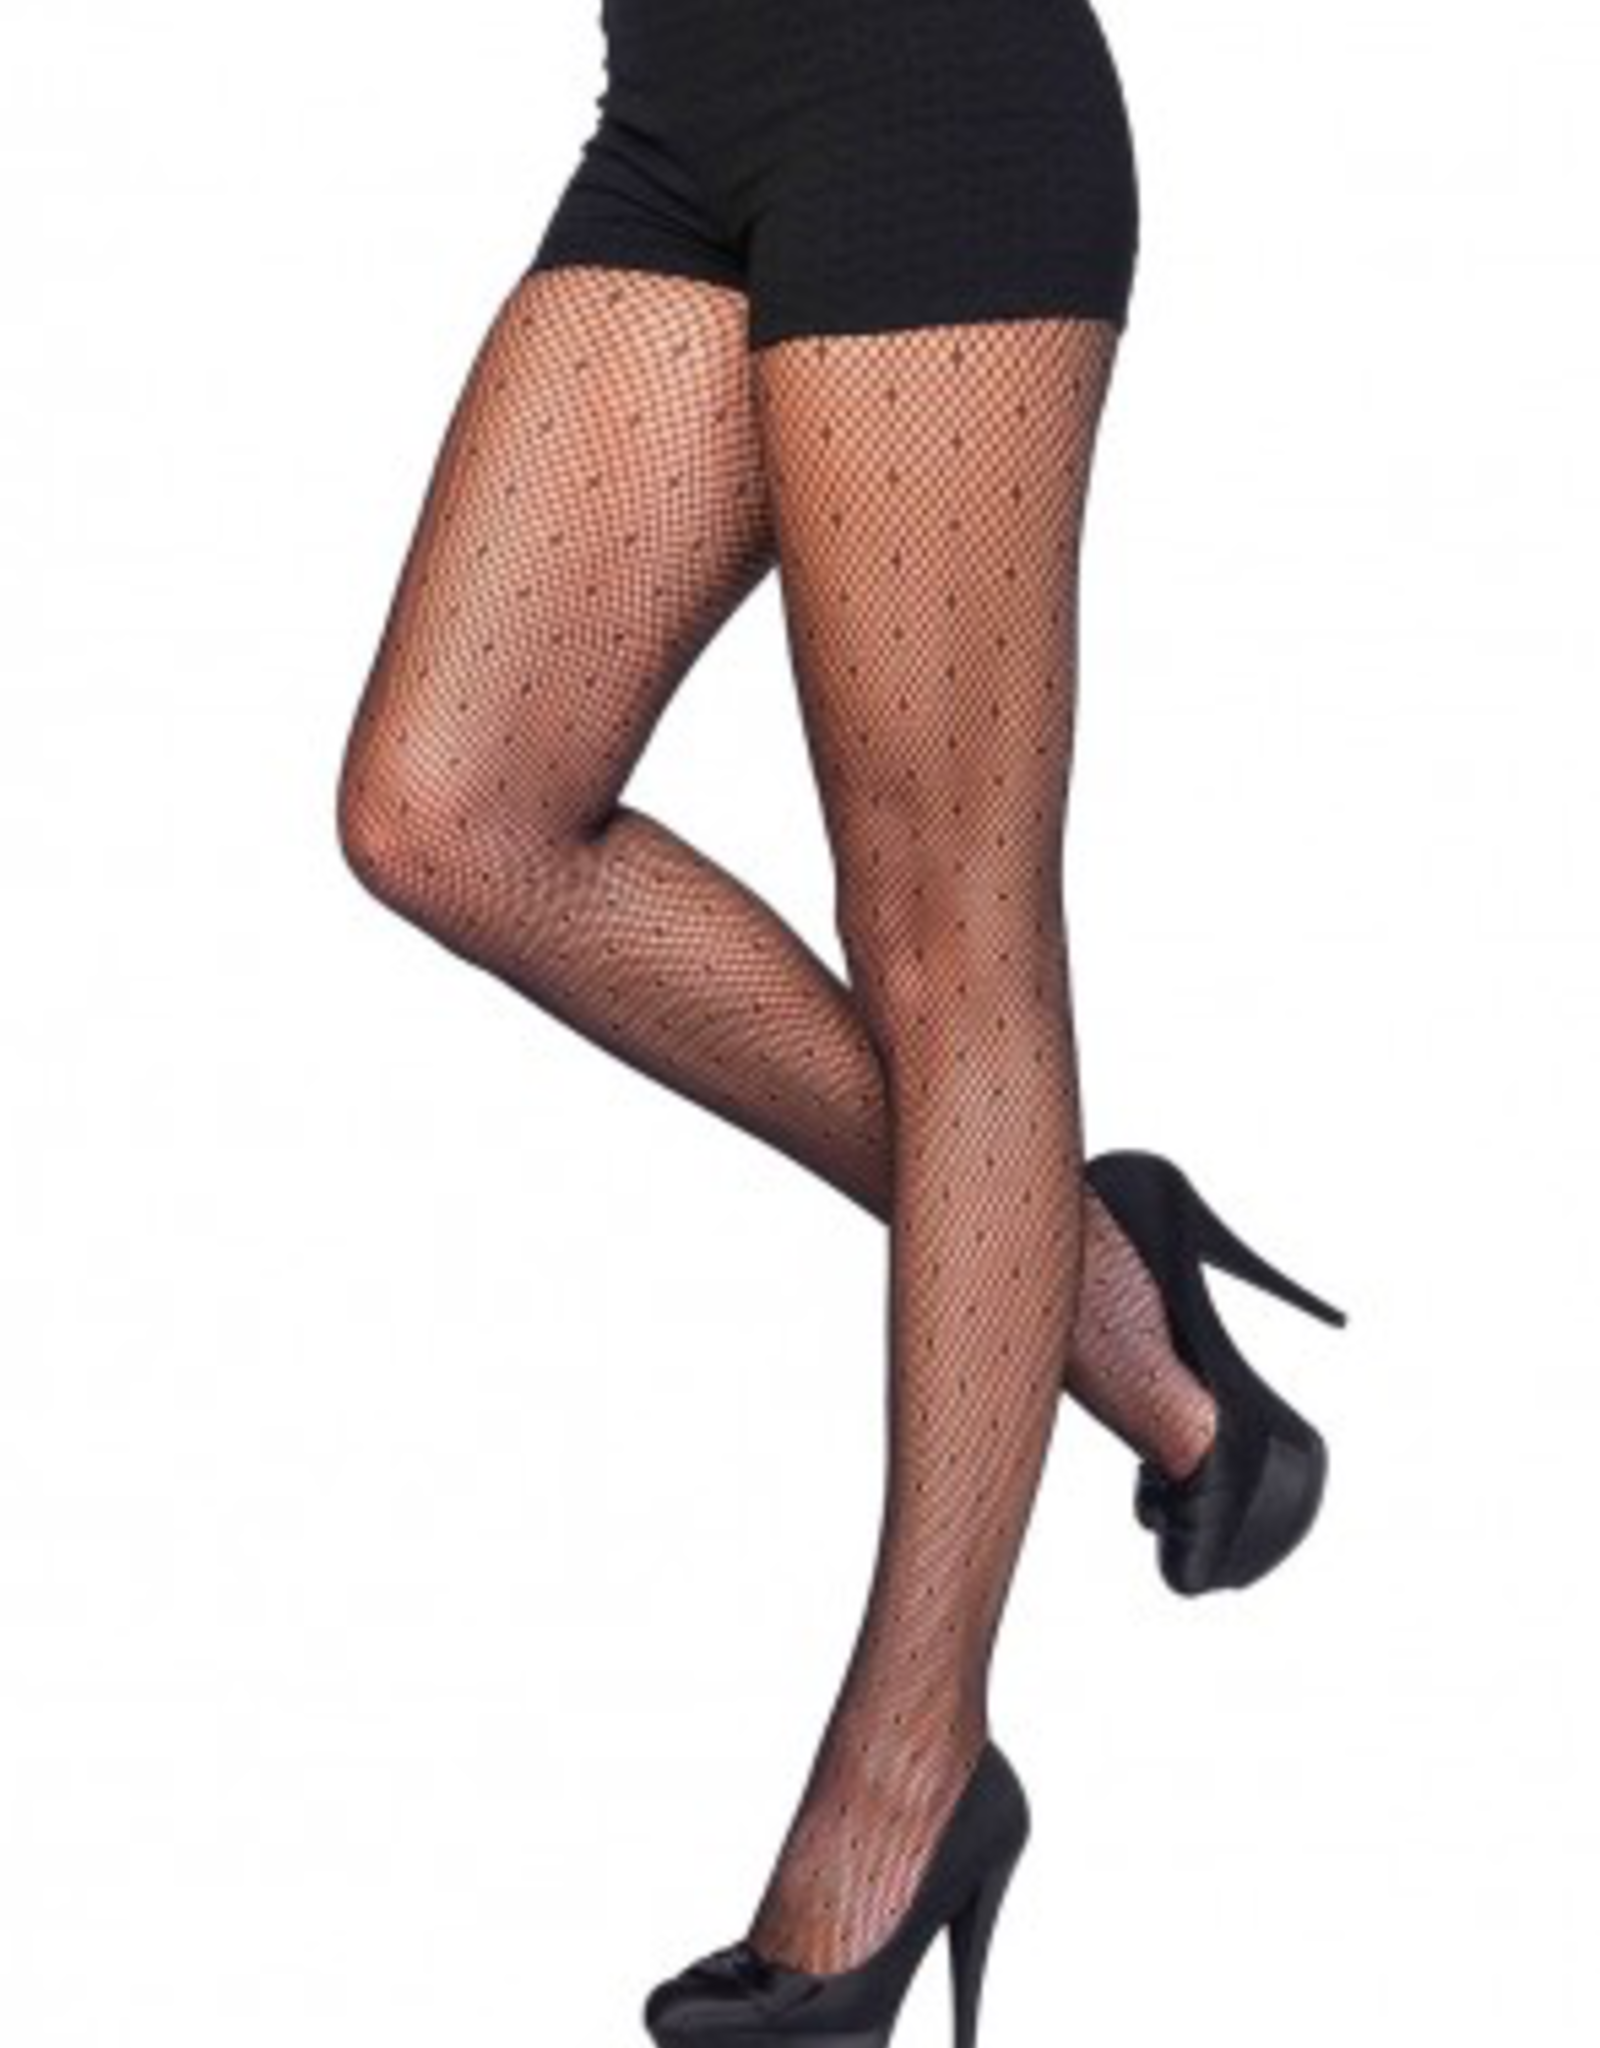 PANTYHOSE-SHEER STARLET DOTTED NET, BLK, D